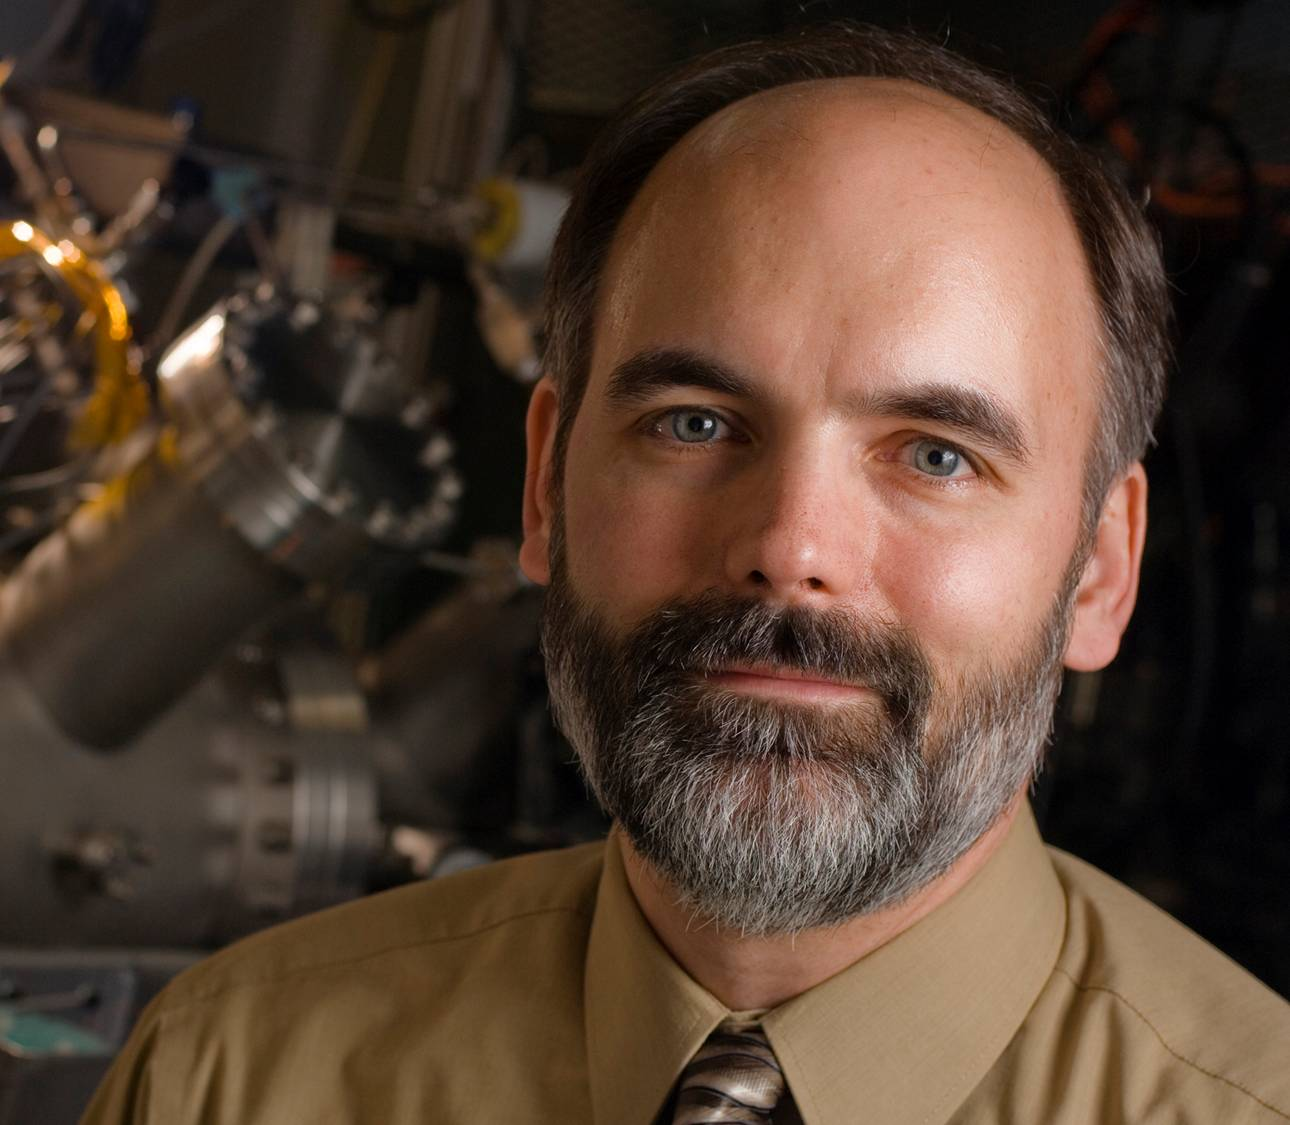 Dist. Prof. Bradley Sherrill hosts FRIB's international scientists works